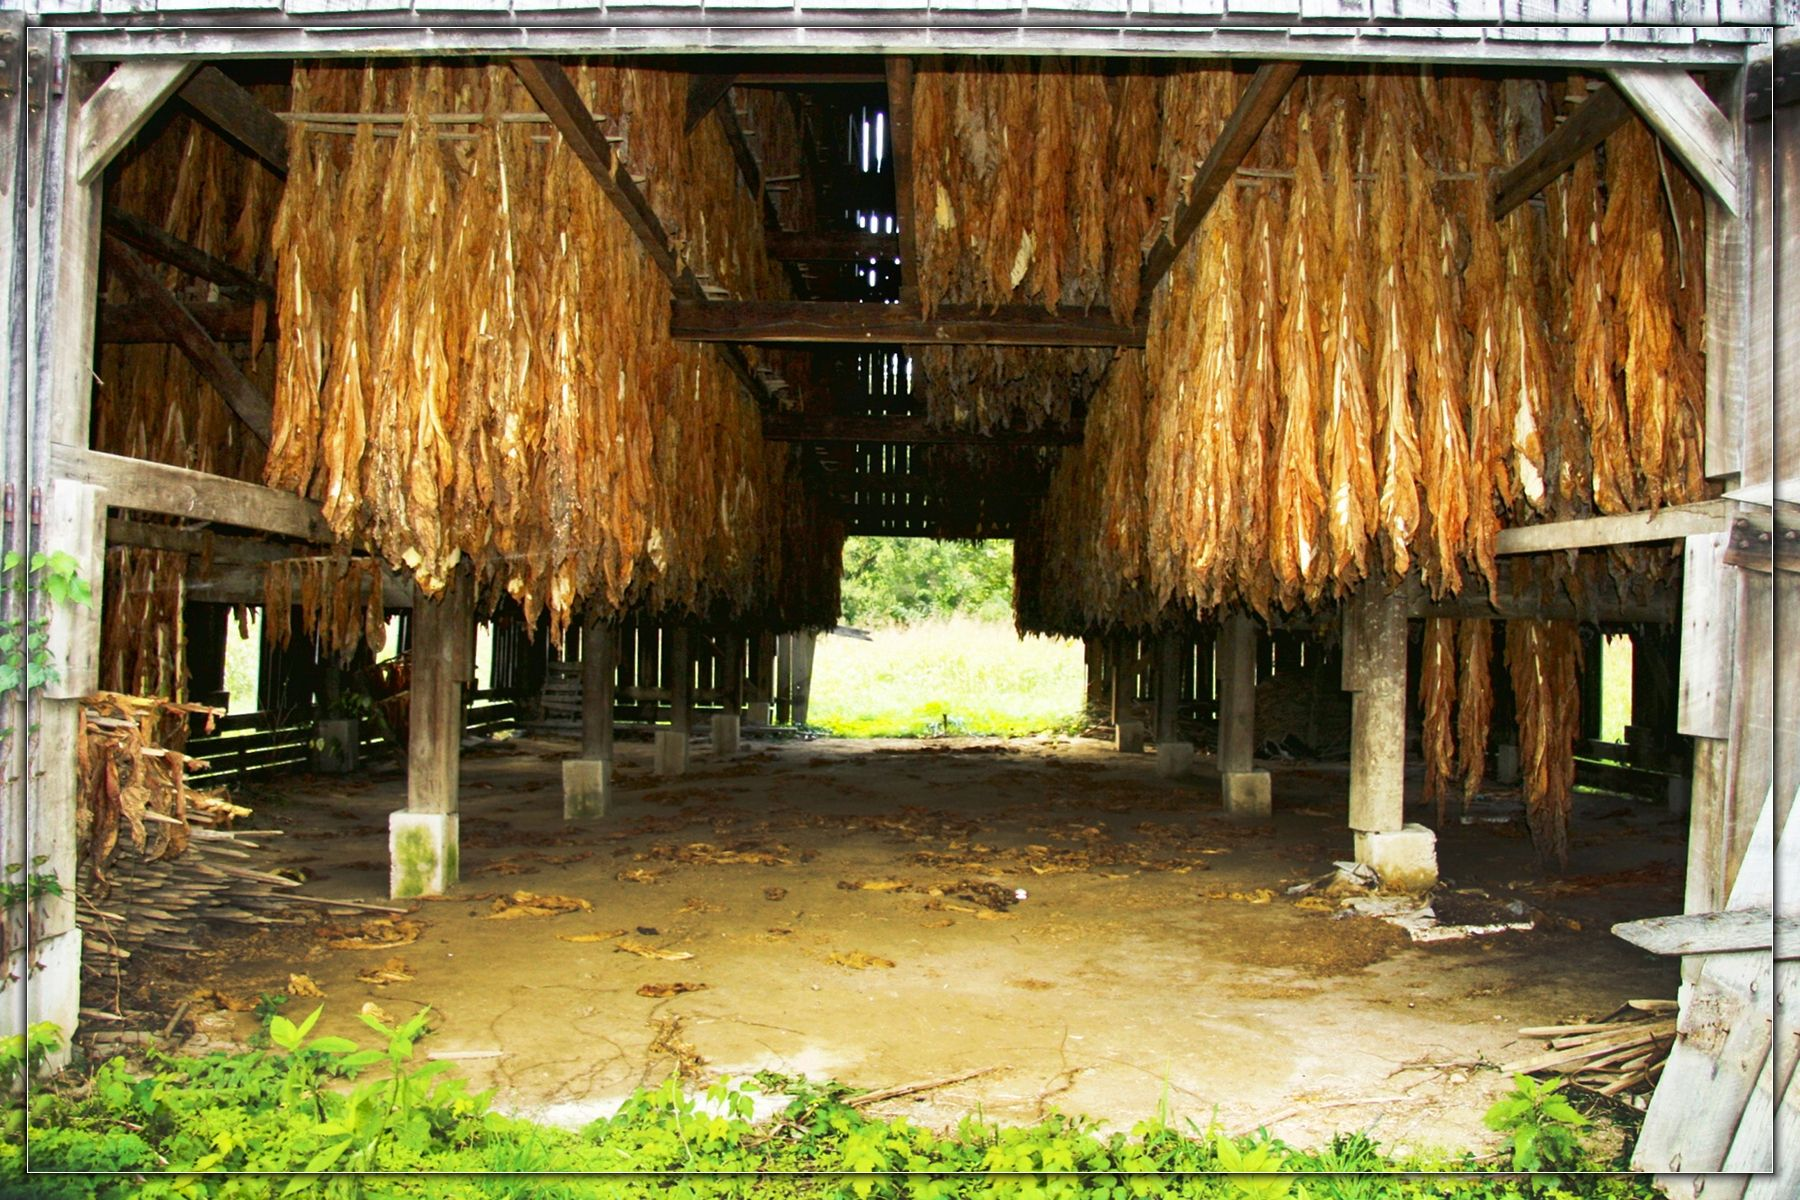 Marvelous photograph of Kentucky tobacco hanging in a barn. KENTUCKY Pinterest with #9BA724 color and 1800x1200 pixels